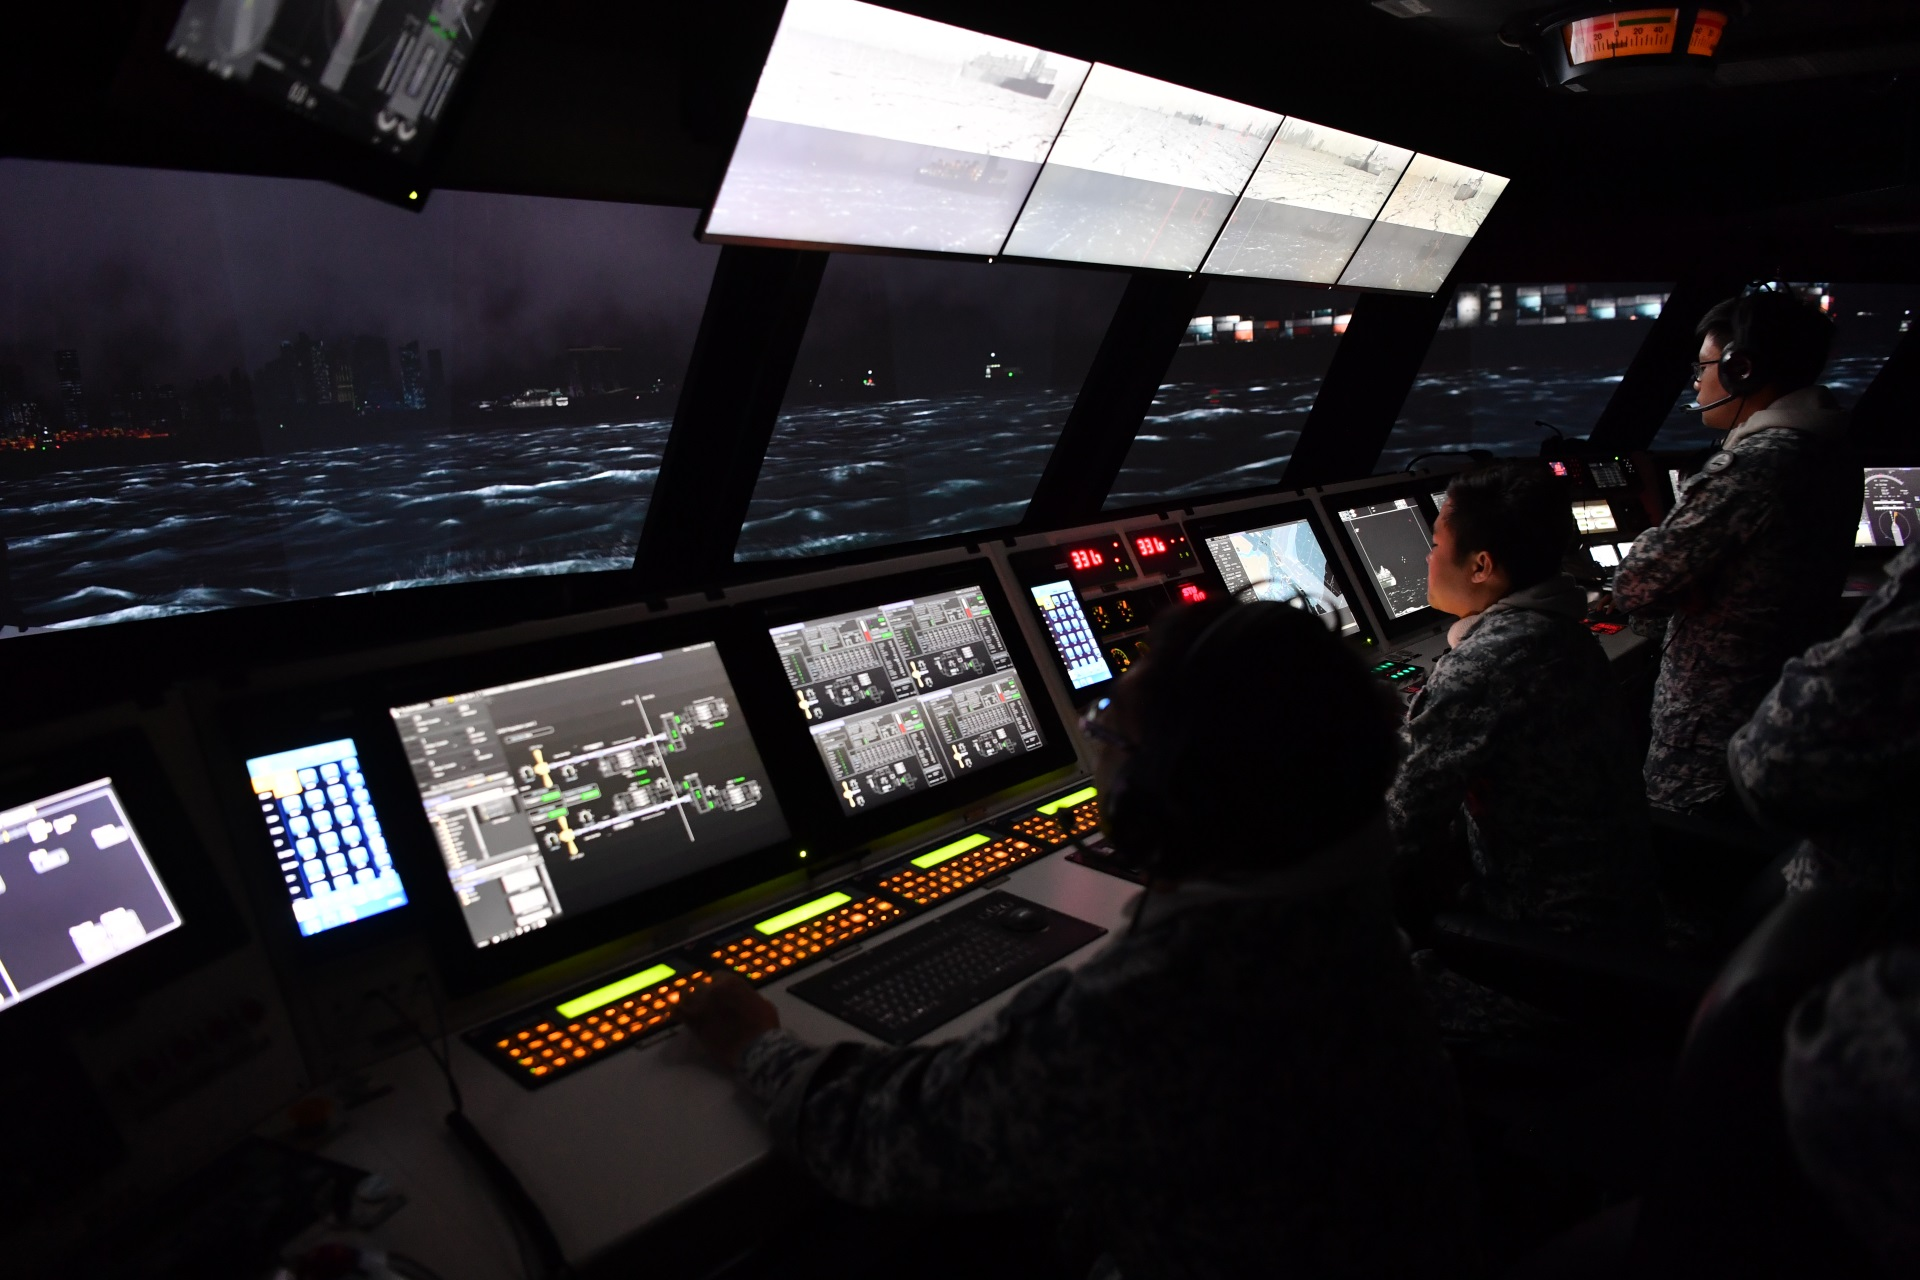 S'pore Navy opens its first integrated simulation centre, commissions new Littoral Mission Vessels